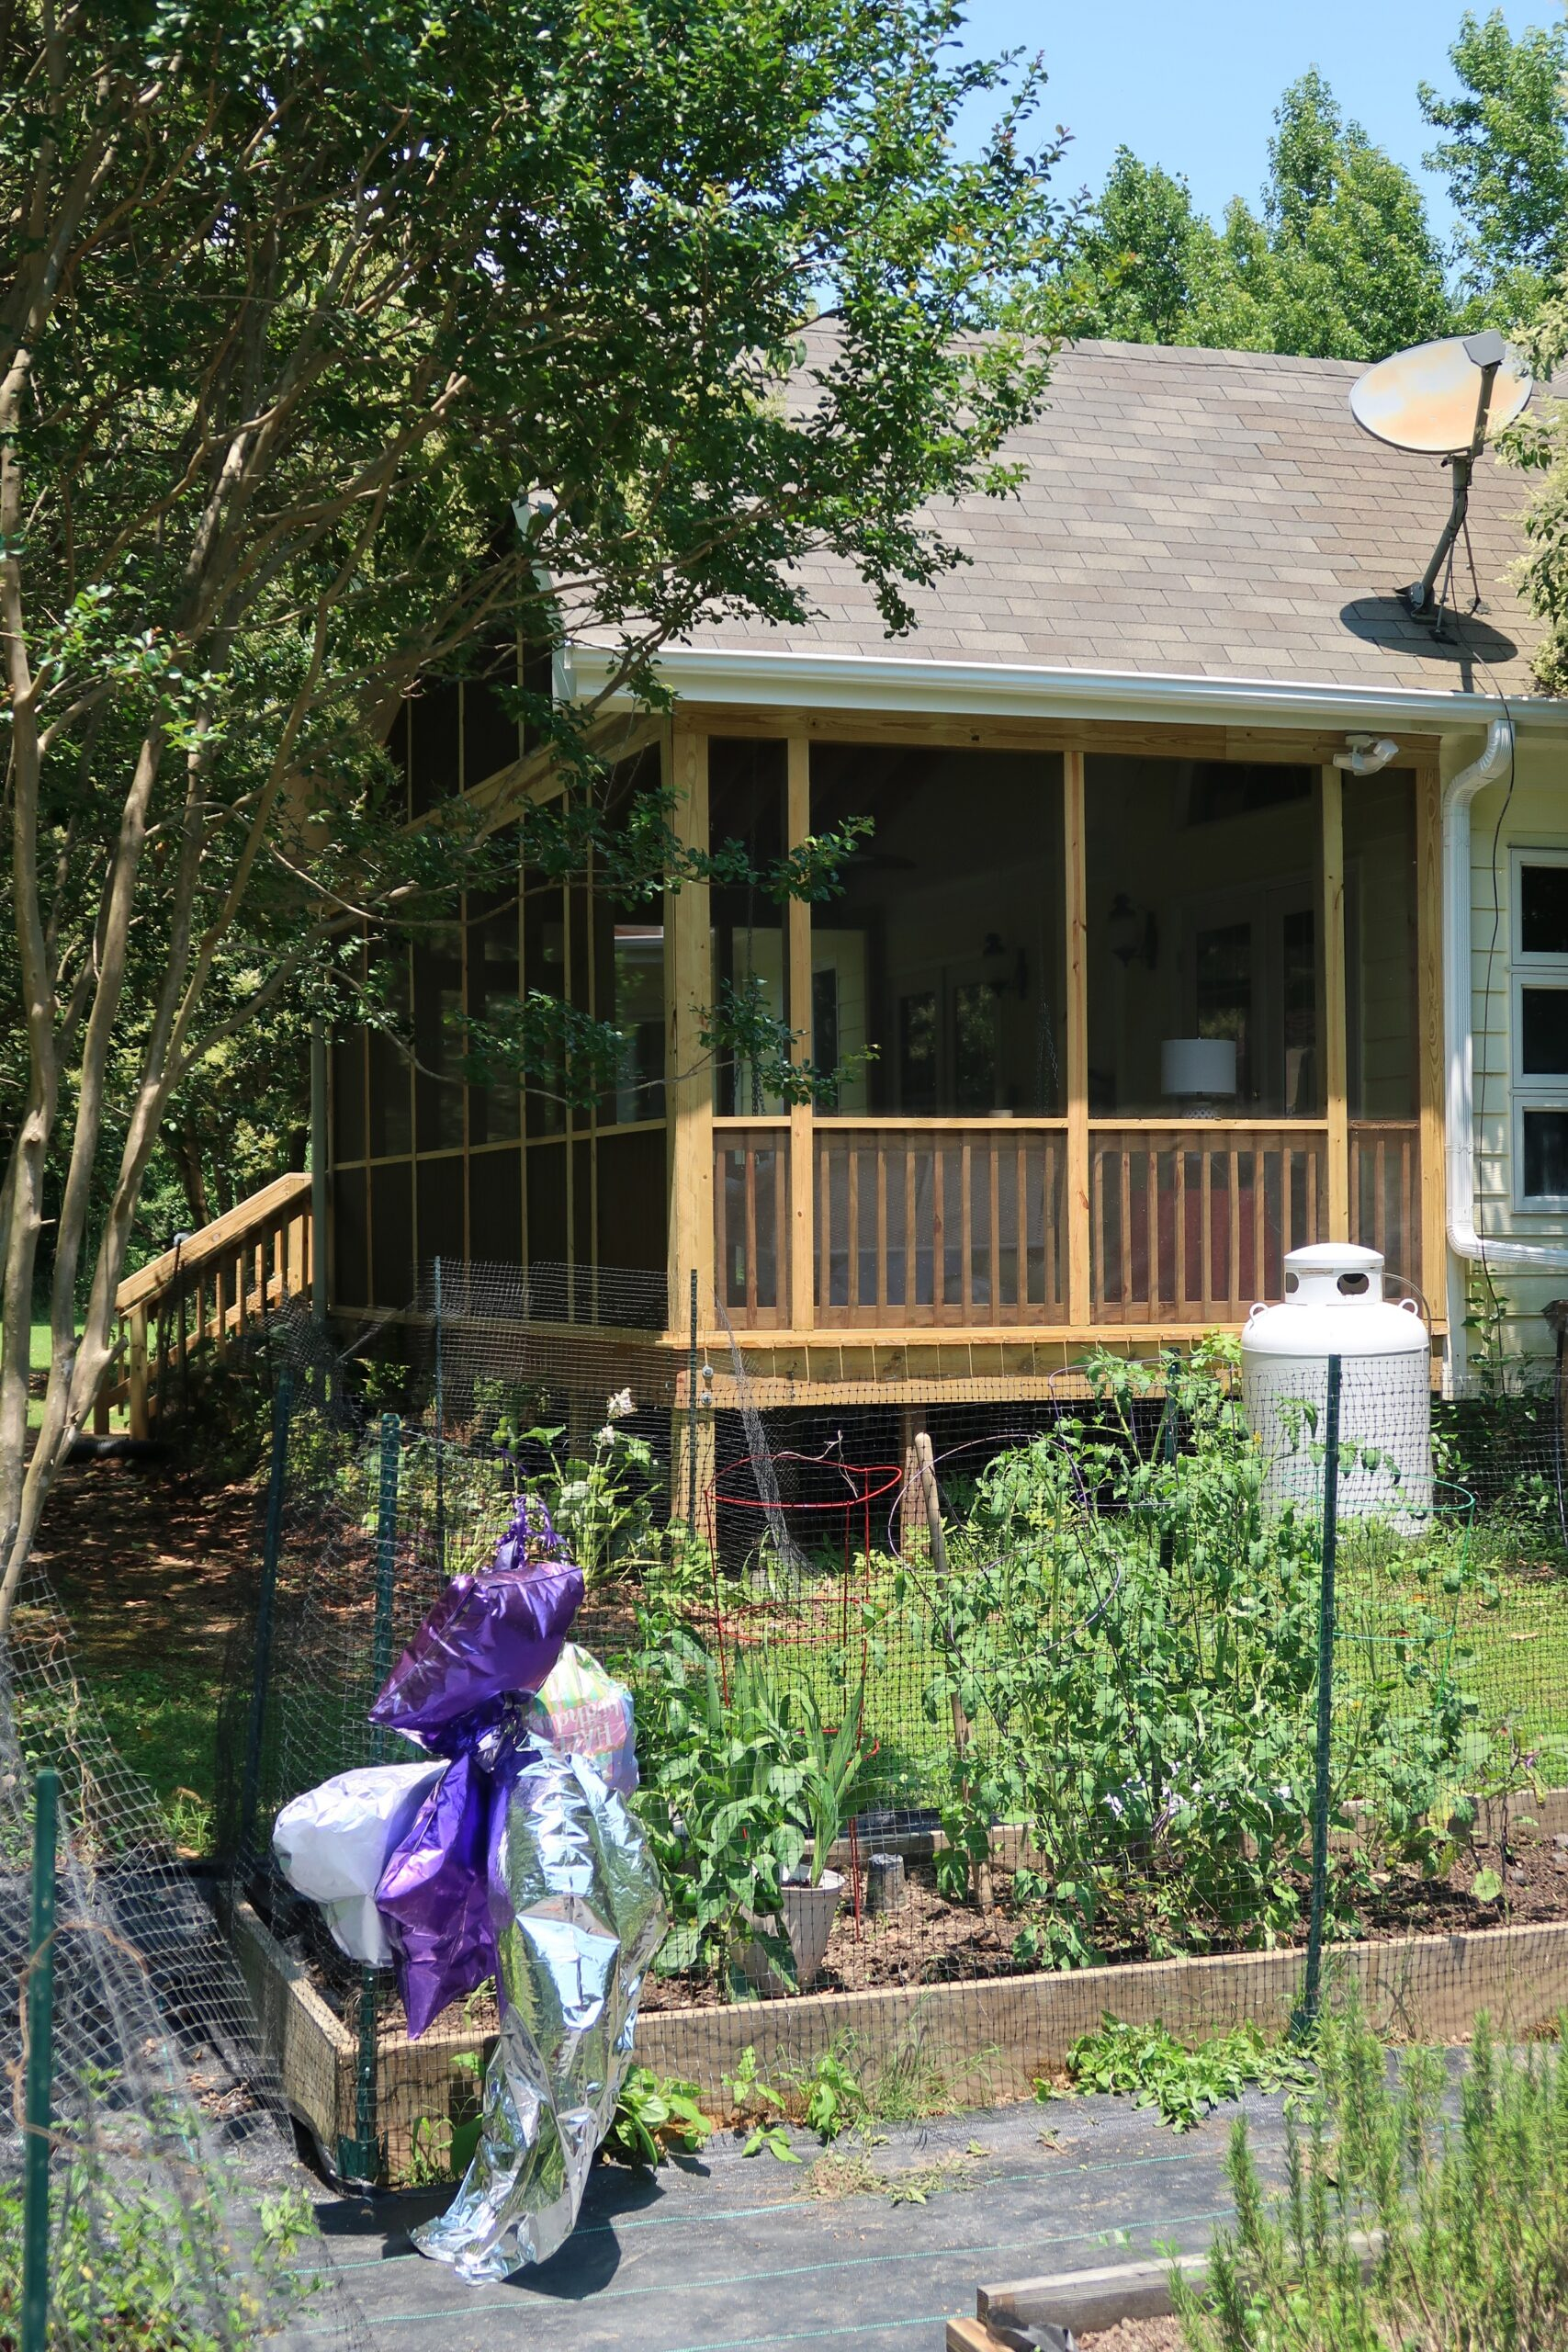 Side View of Porch and Garden